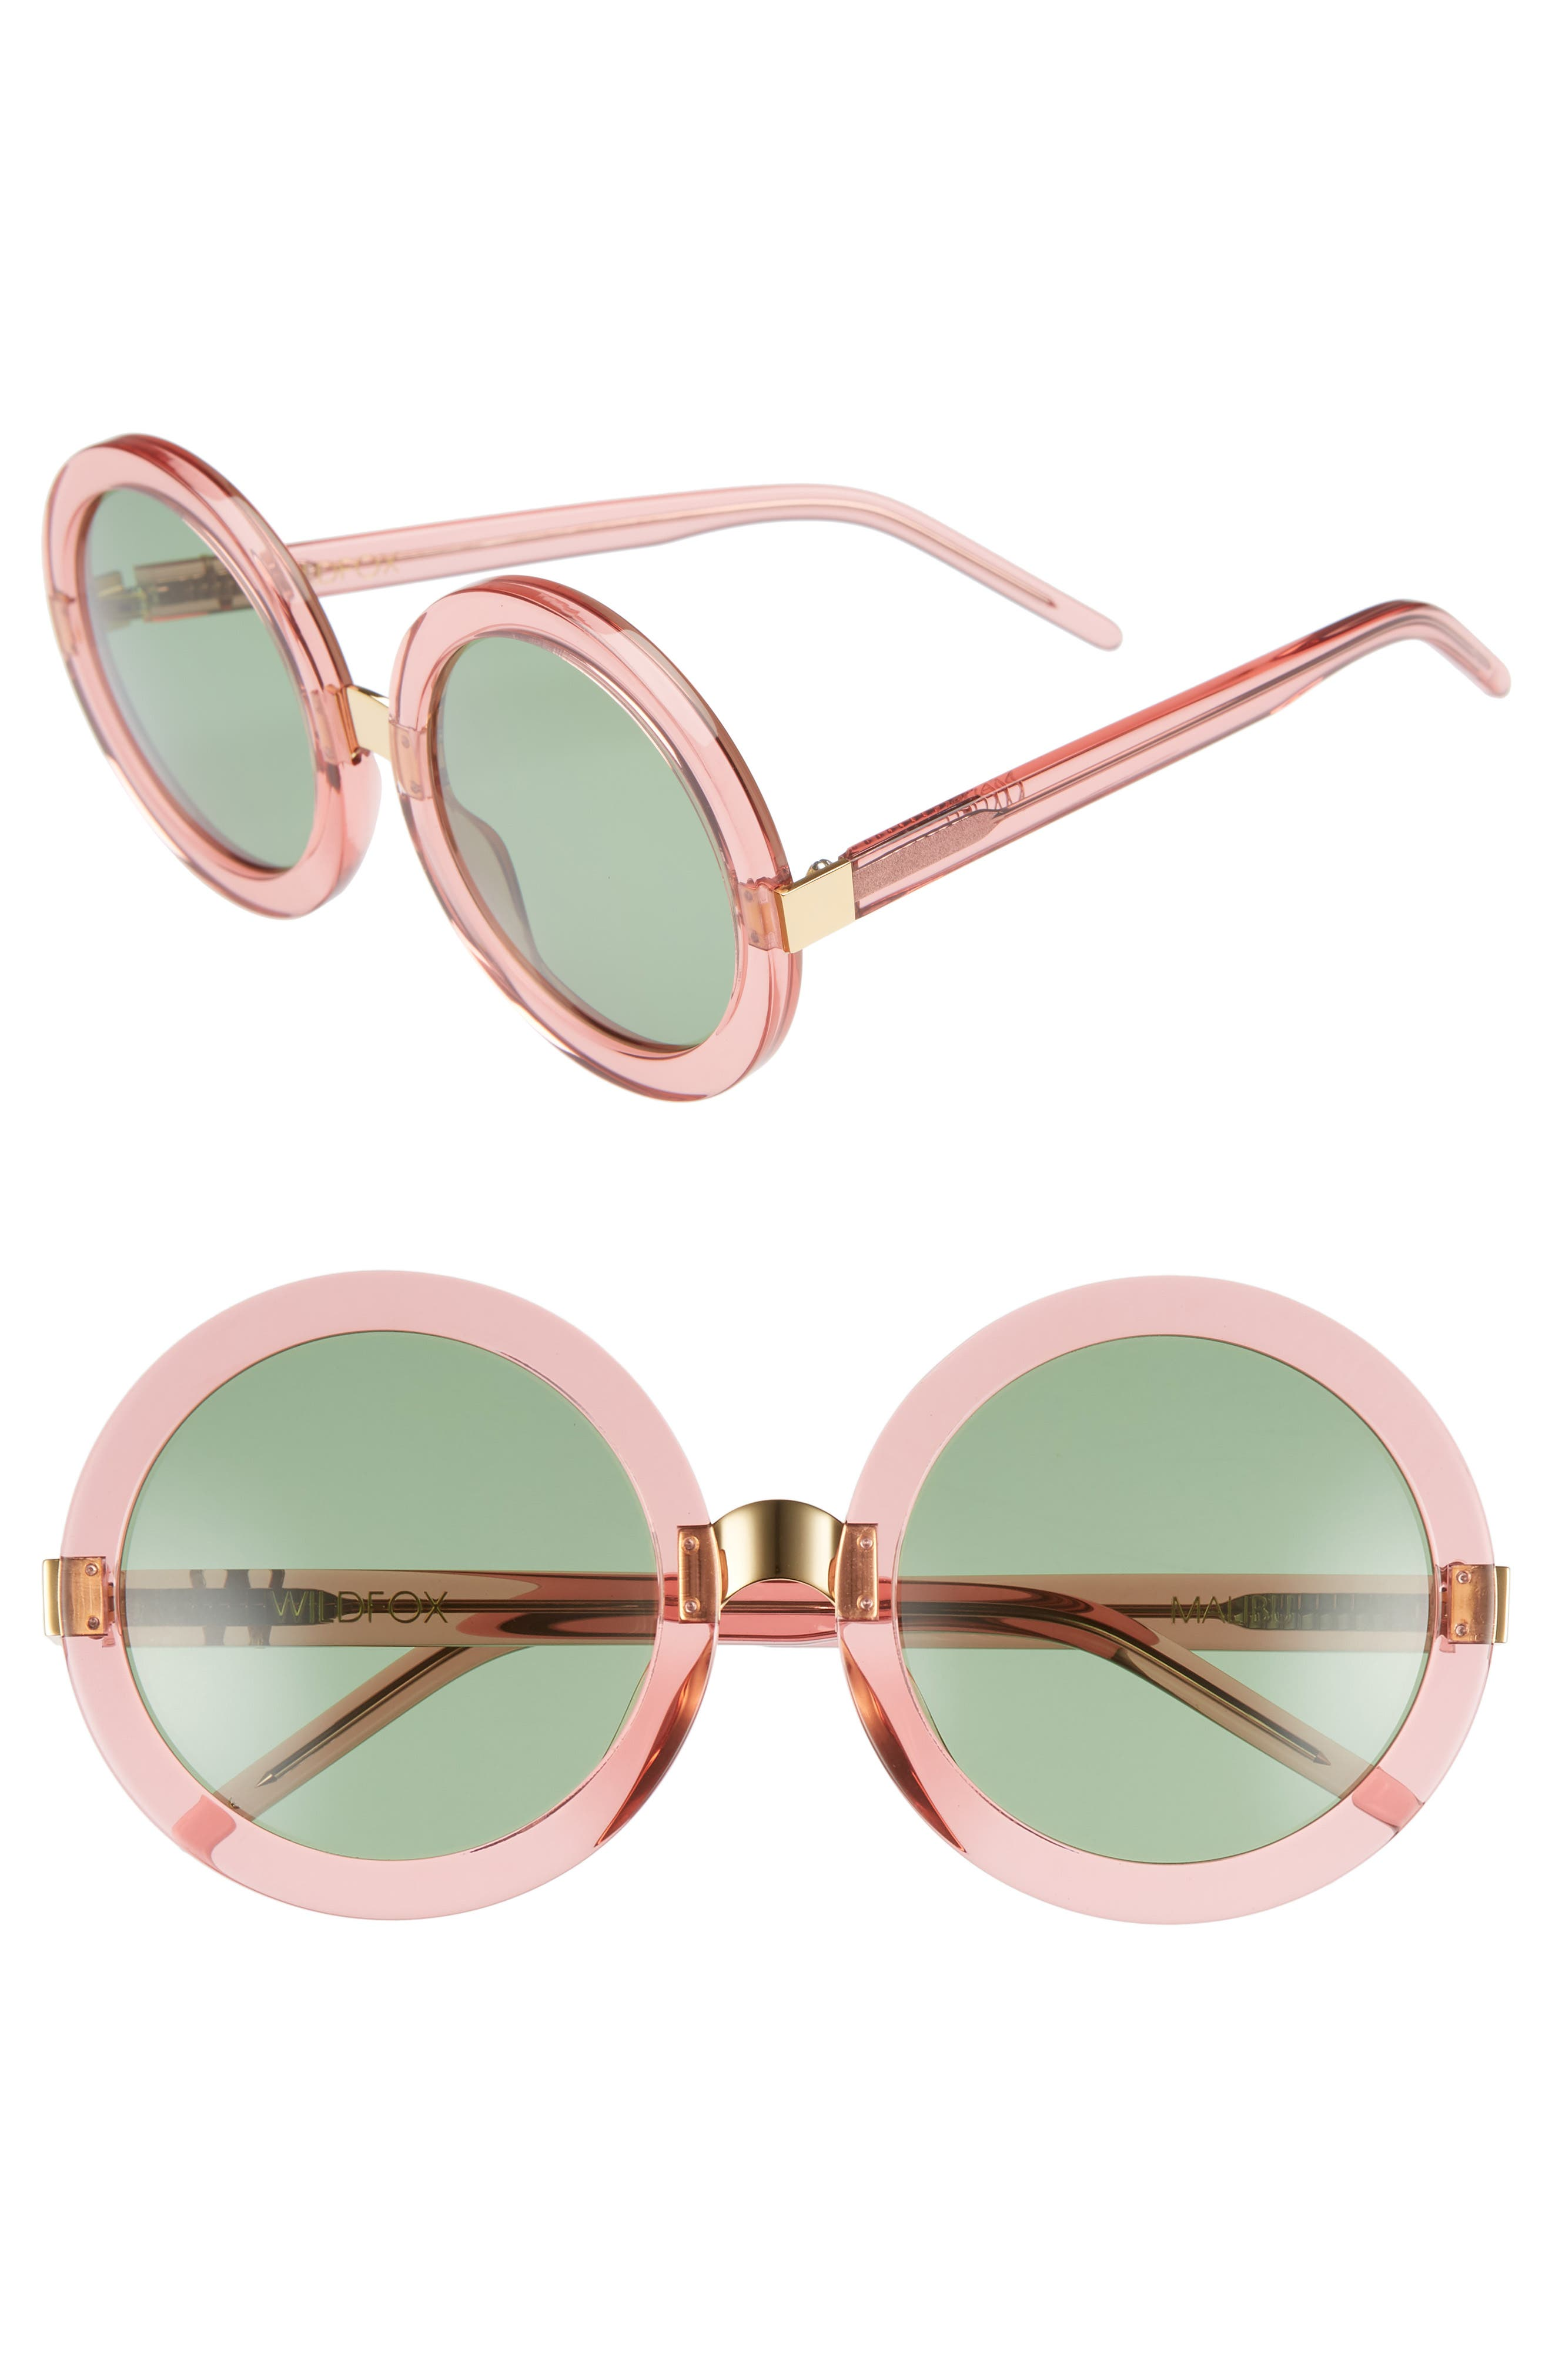 WILDFOX 'Malibu' 56mm Round Sunglasses, Main, color, 690